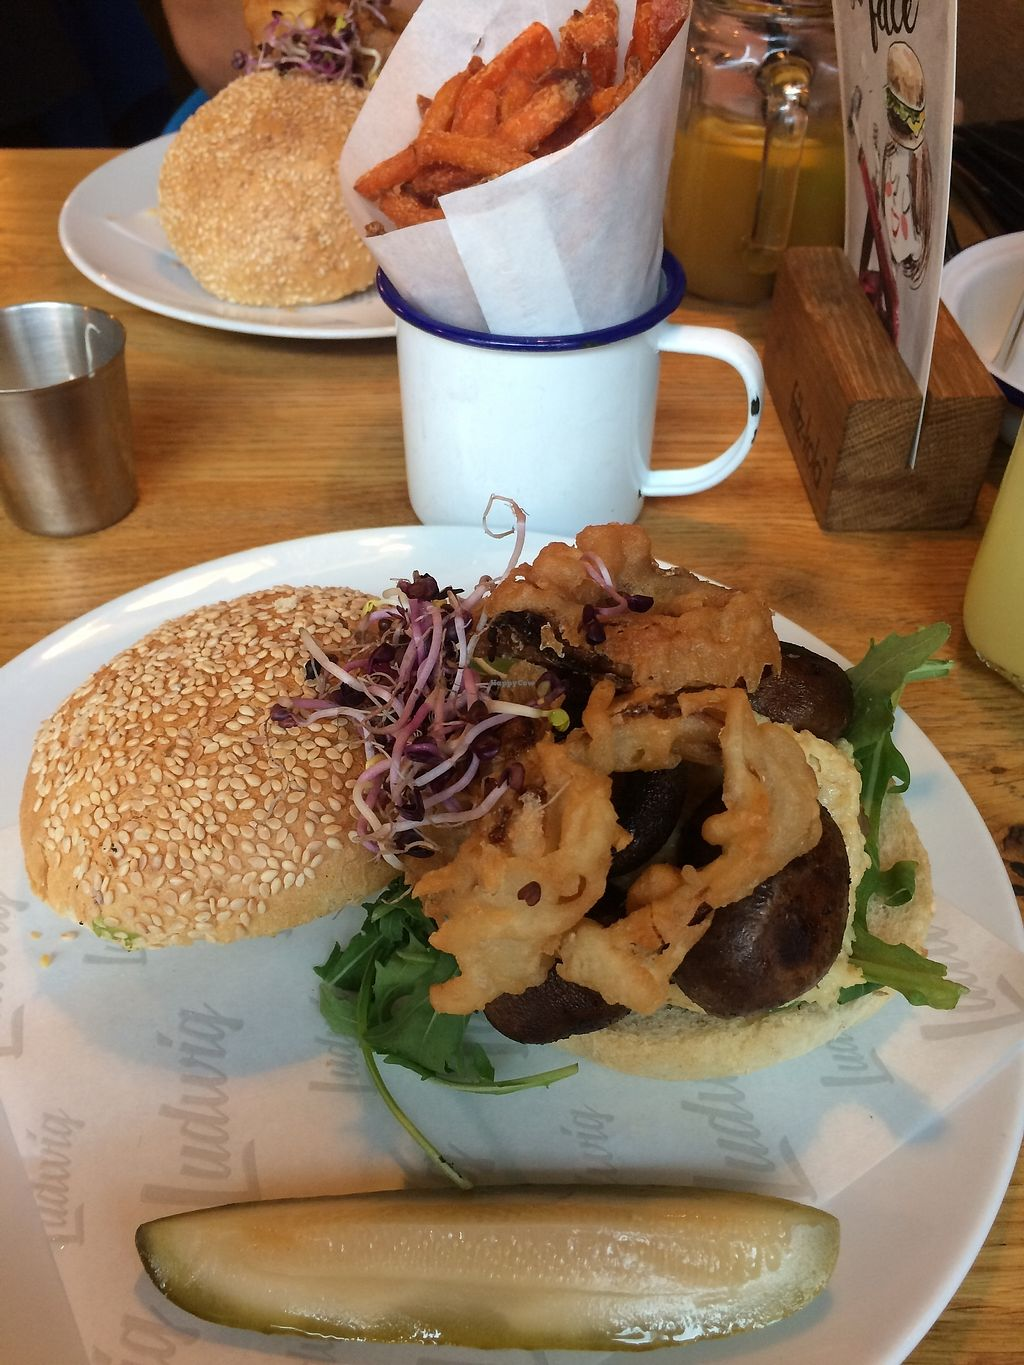 """Photo of Ludwig Burger & Beer  by <a href=""""/members/profile/Marin100"""">Marin100</a> <br/>vegan burger <br/> July 21, 2017  - <a href='/contact/abuse/image/58270/282962'>Report</a>"""